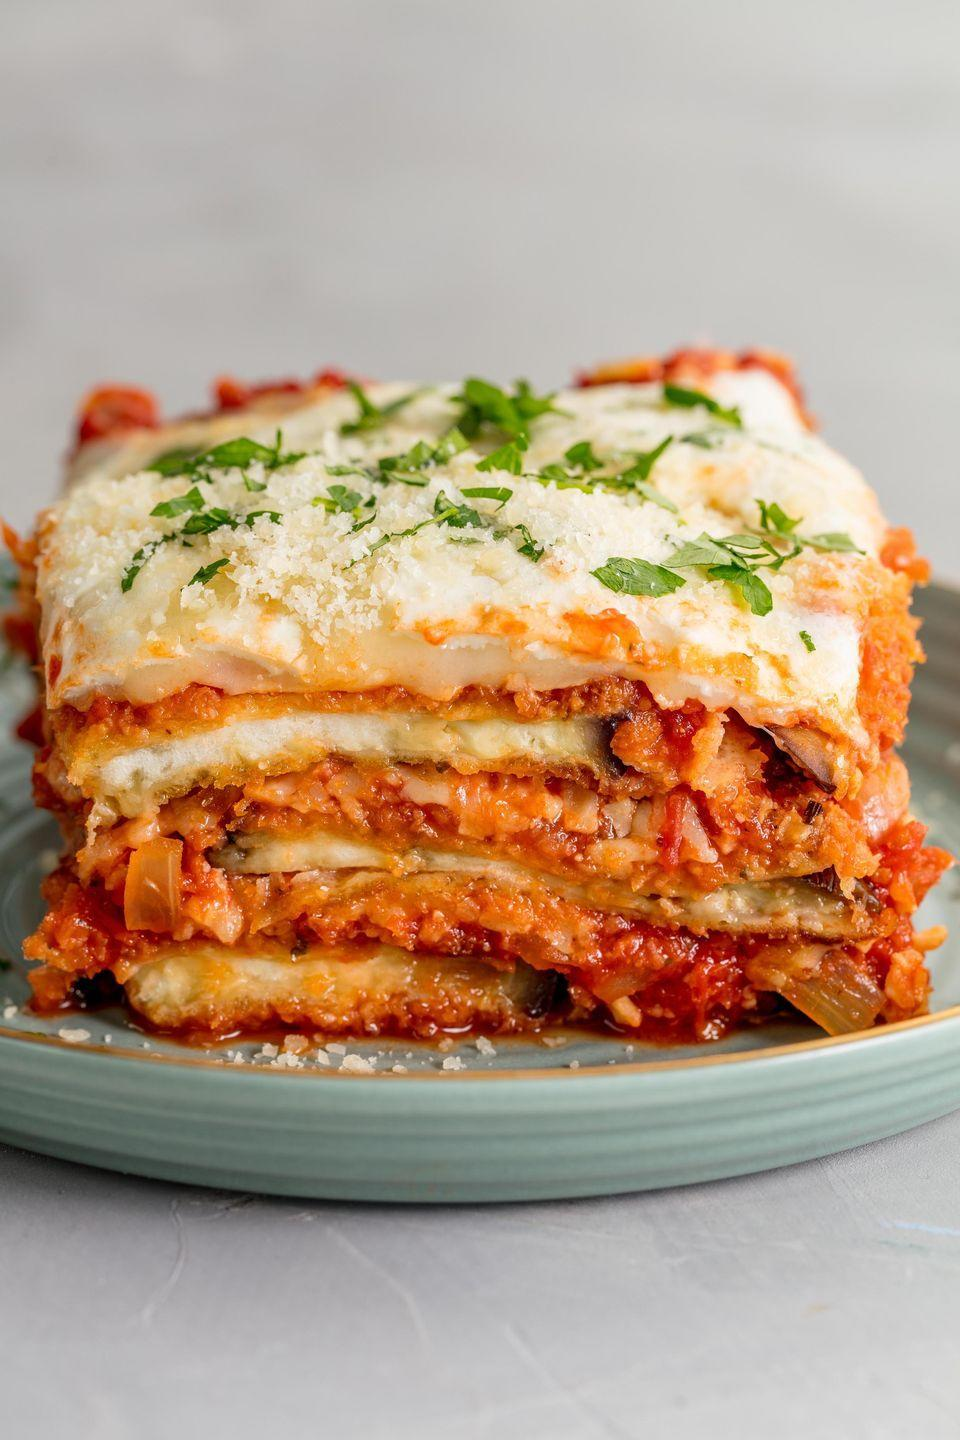 "<p>We promise every step is worth it.</p><p>Get the recipe from <a href=""https://www.delish.com/cooking/recipe-ideas/recipes/a58245/easy-baked-eggplant-parmesan-recipe/"" rel=""nofollow noopener"" target=""_blank"" data-ylk=""slk:Delish"" class=""link rapid-noclick-resp"">Delish</a>.</p><p><strong><a class=""link rapid-noclick-resp"" href=""https://go.redirectingat.com?id=74968X1596630&url=https%3A%2F%2Fwww.barnesandnoble.com%2Fw%2Fdelish-editors-of-delish%2F1127659306%3Fst%3DAFF%26SID%3DBarnes%2B%2526%2BNoble%2B-%2BTop%2B100%253A%2BBook%2BBestsellers%262sid%3DSkimlinks_7689440_NA&sref=https%3A%2F%2Fwww.delish.com%2Fcooking%2Frecipe-ideas%2Fg3156%2Fwinter-dinners%2F"" rel=""nofollow noopener"" target=""_blank"" data-ylk=""slk:GET YOURS NOW"">GET YOURS NOW</a> </strong><strong><em>Delish Cookbook, barnesandnoble.com</em></strong> </p>"